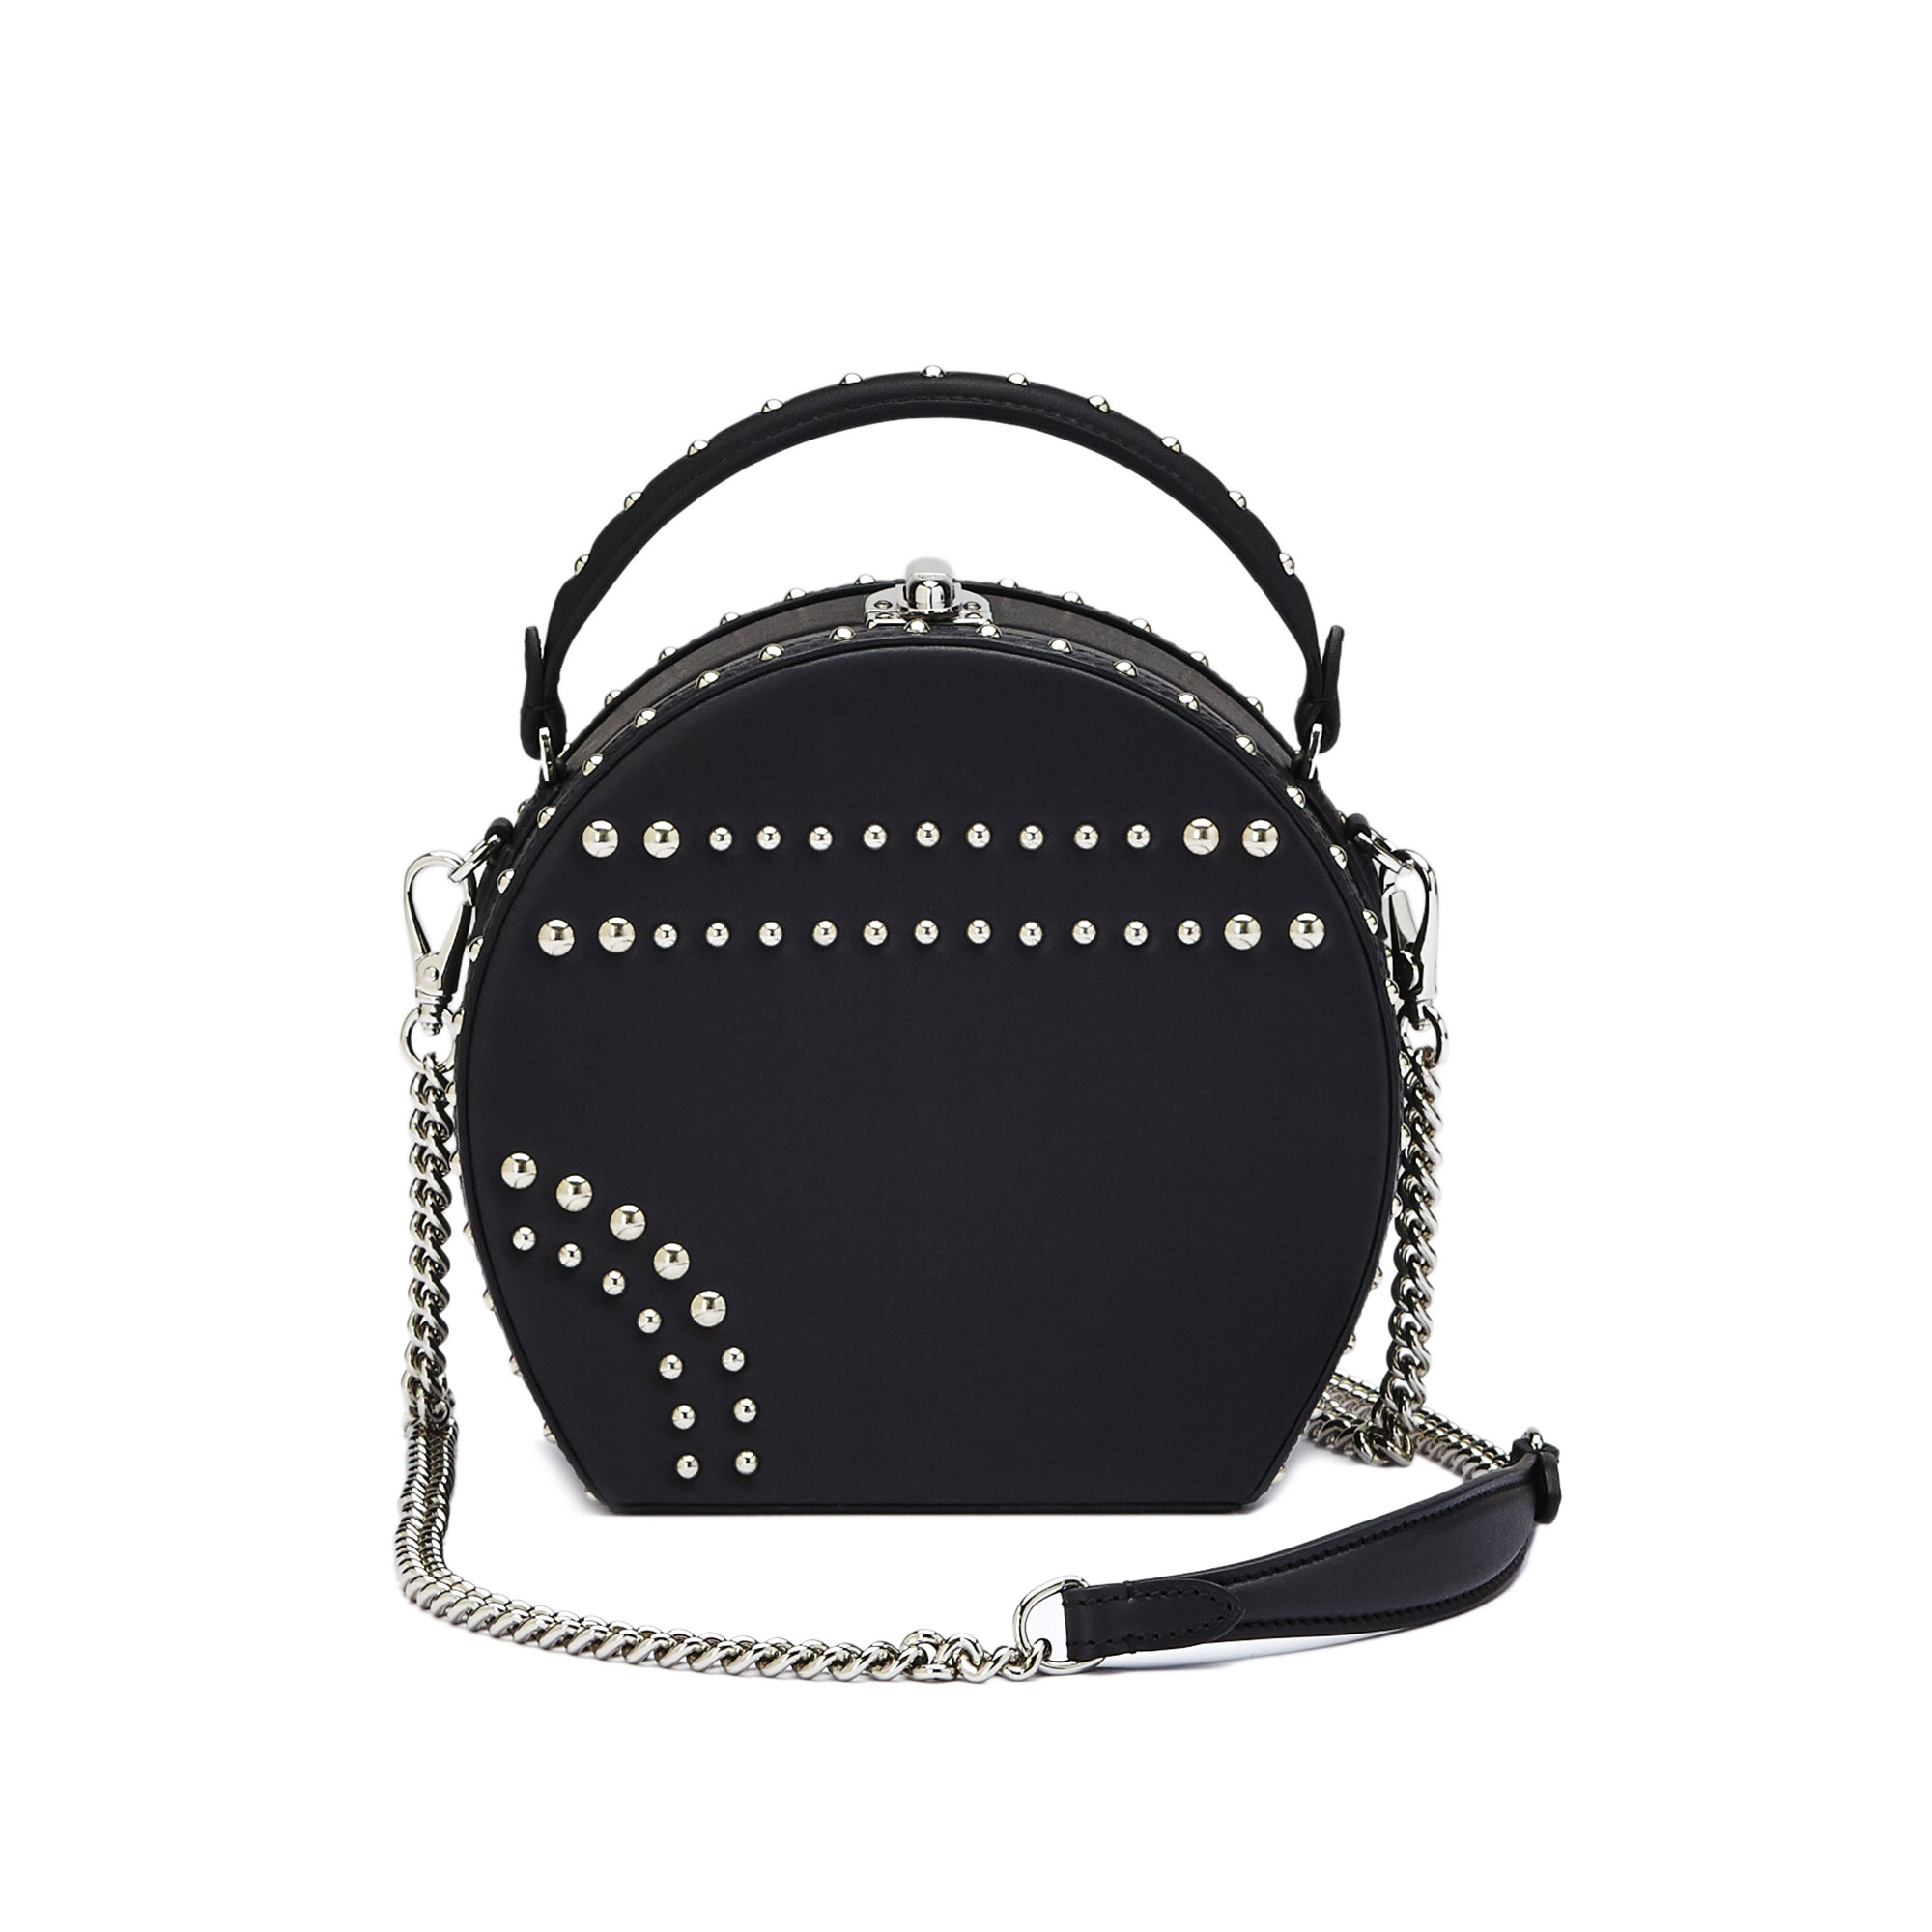 The black french calf Regular Bertoncina with studded bag by Bertoni 1949 03